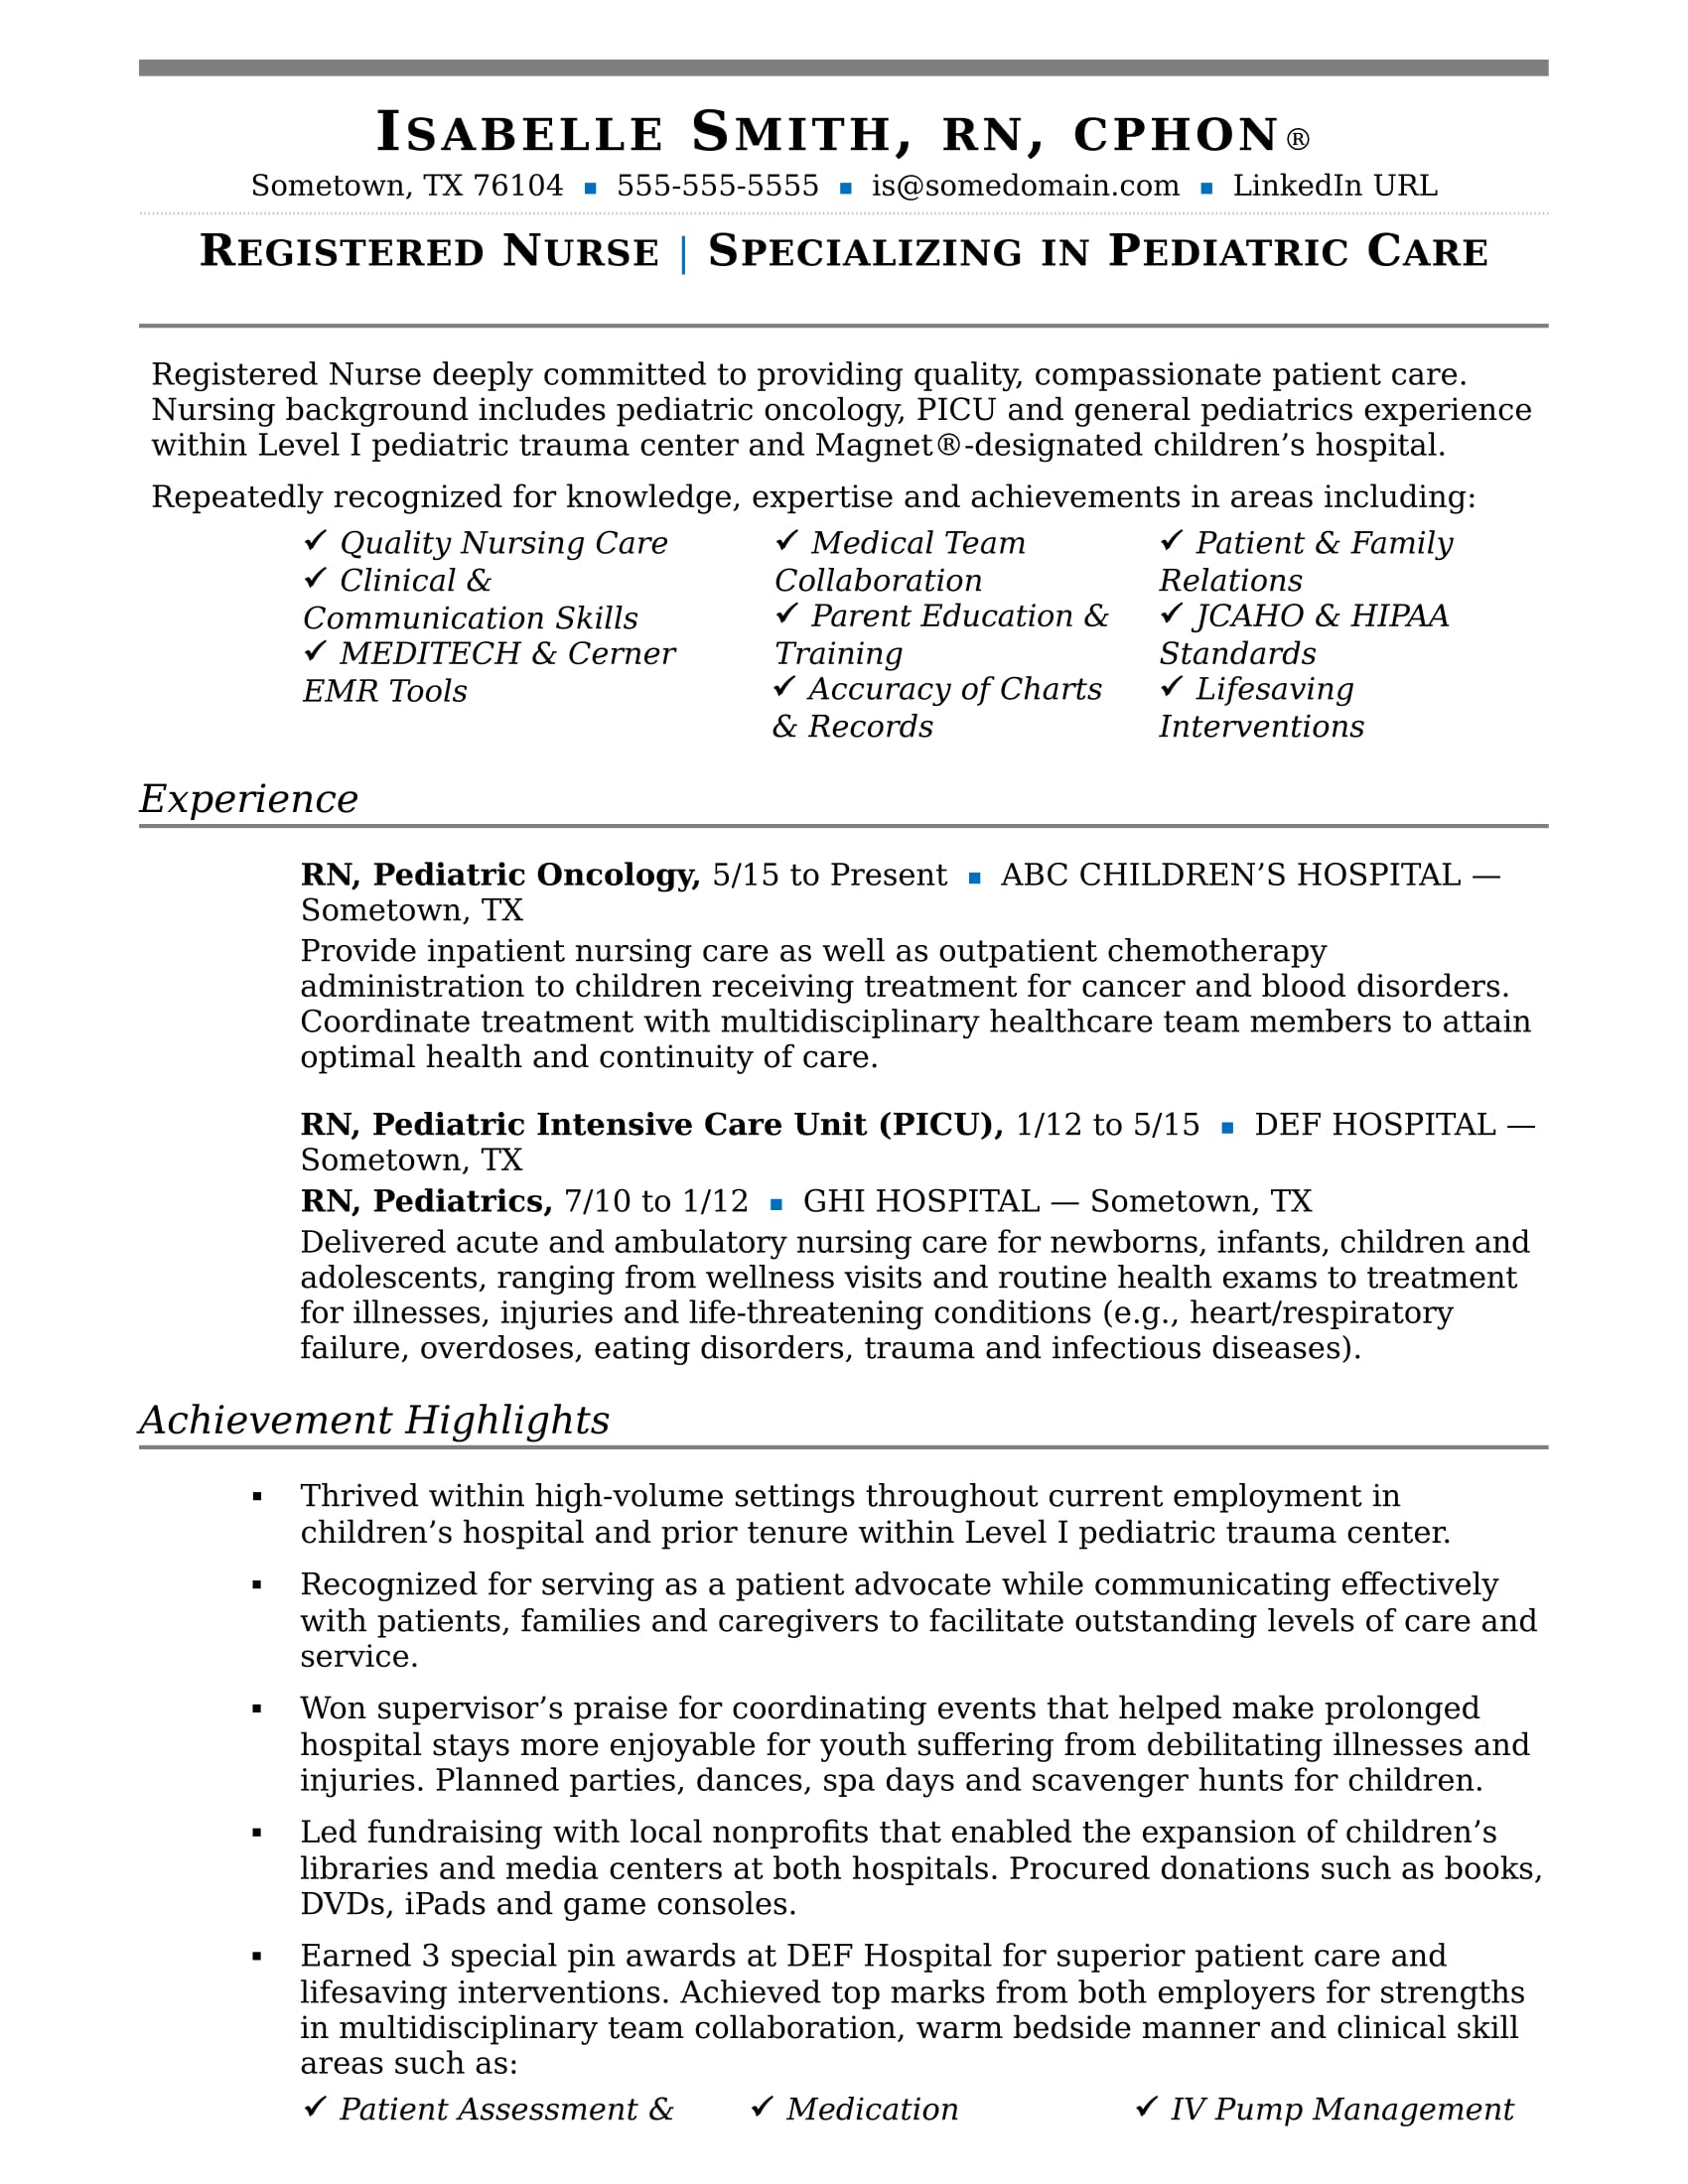 nurse resume sample monster or examples producer good letter of counselling psychologist Resume Or Nurse Resume Examples